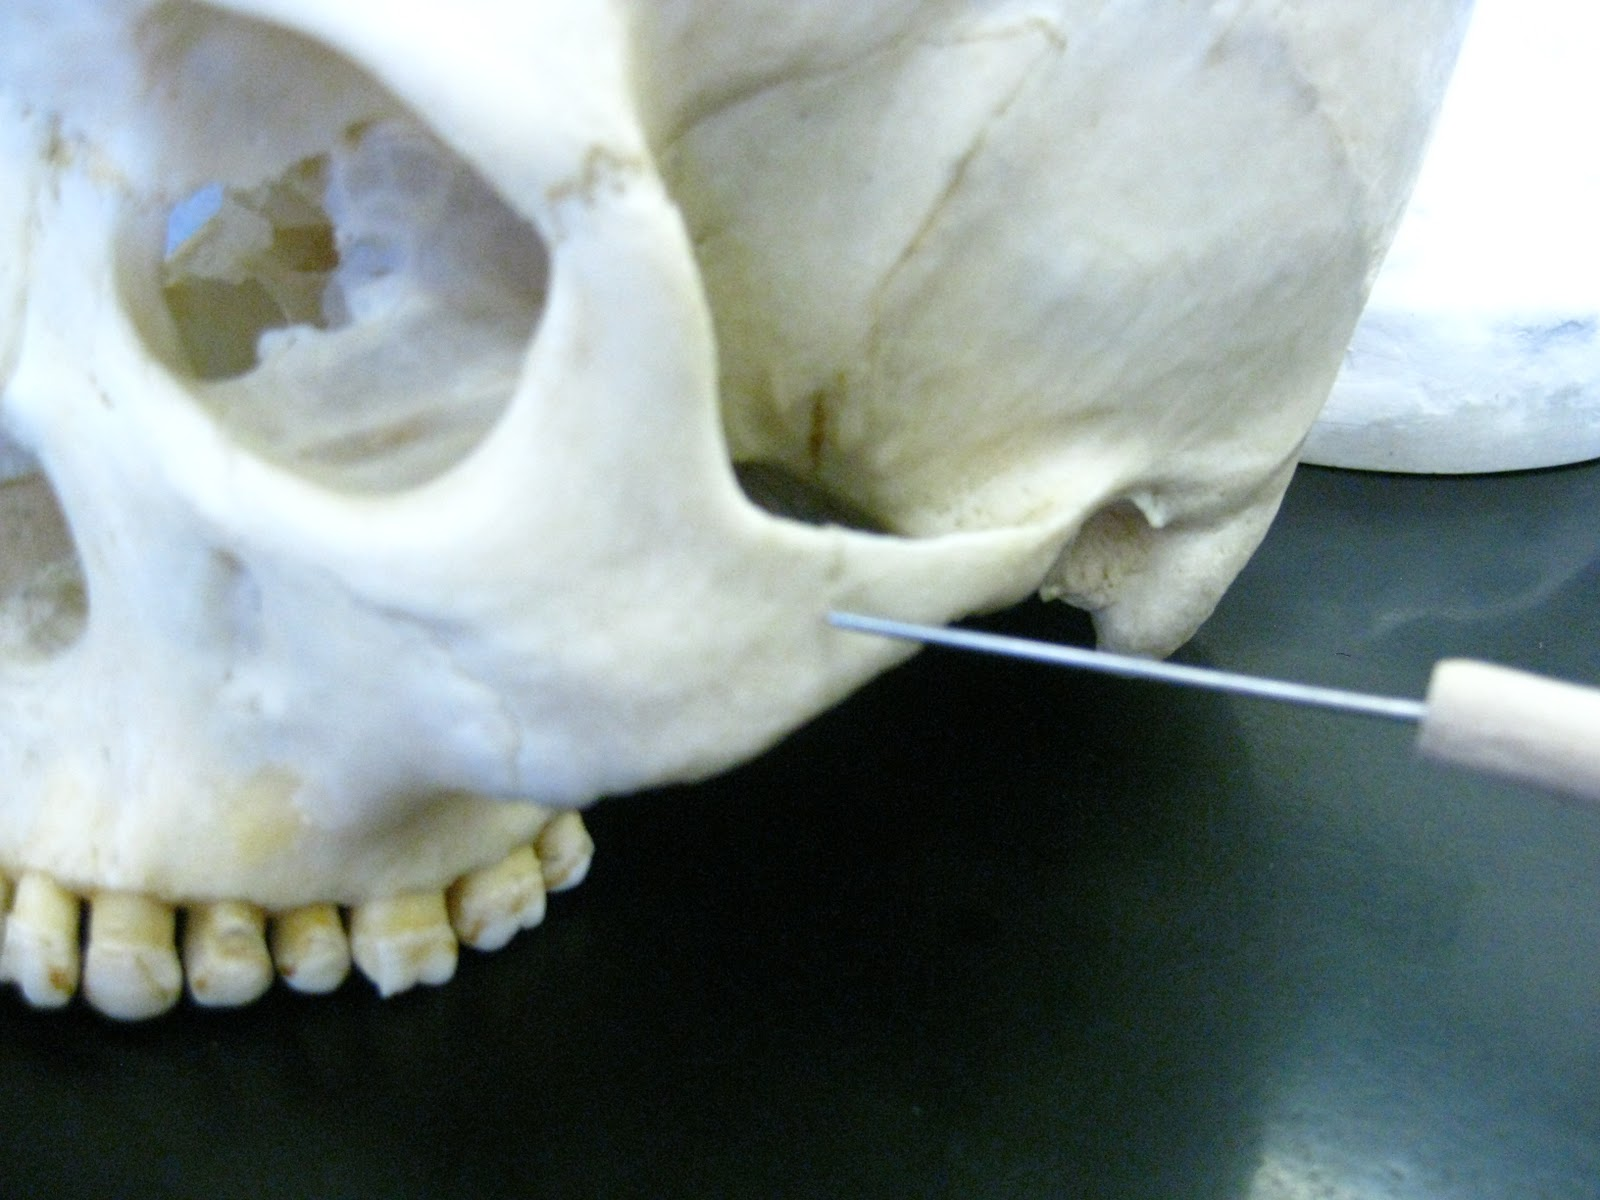 Boned: Human Skull - temporal process (of zygomatic bone)